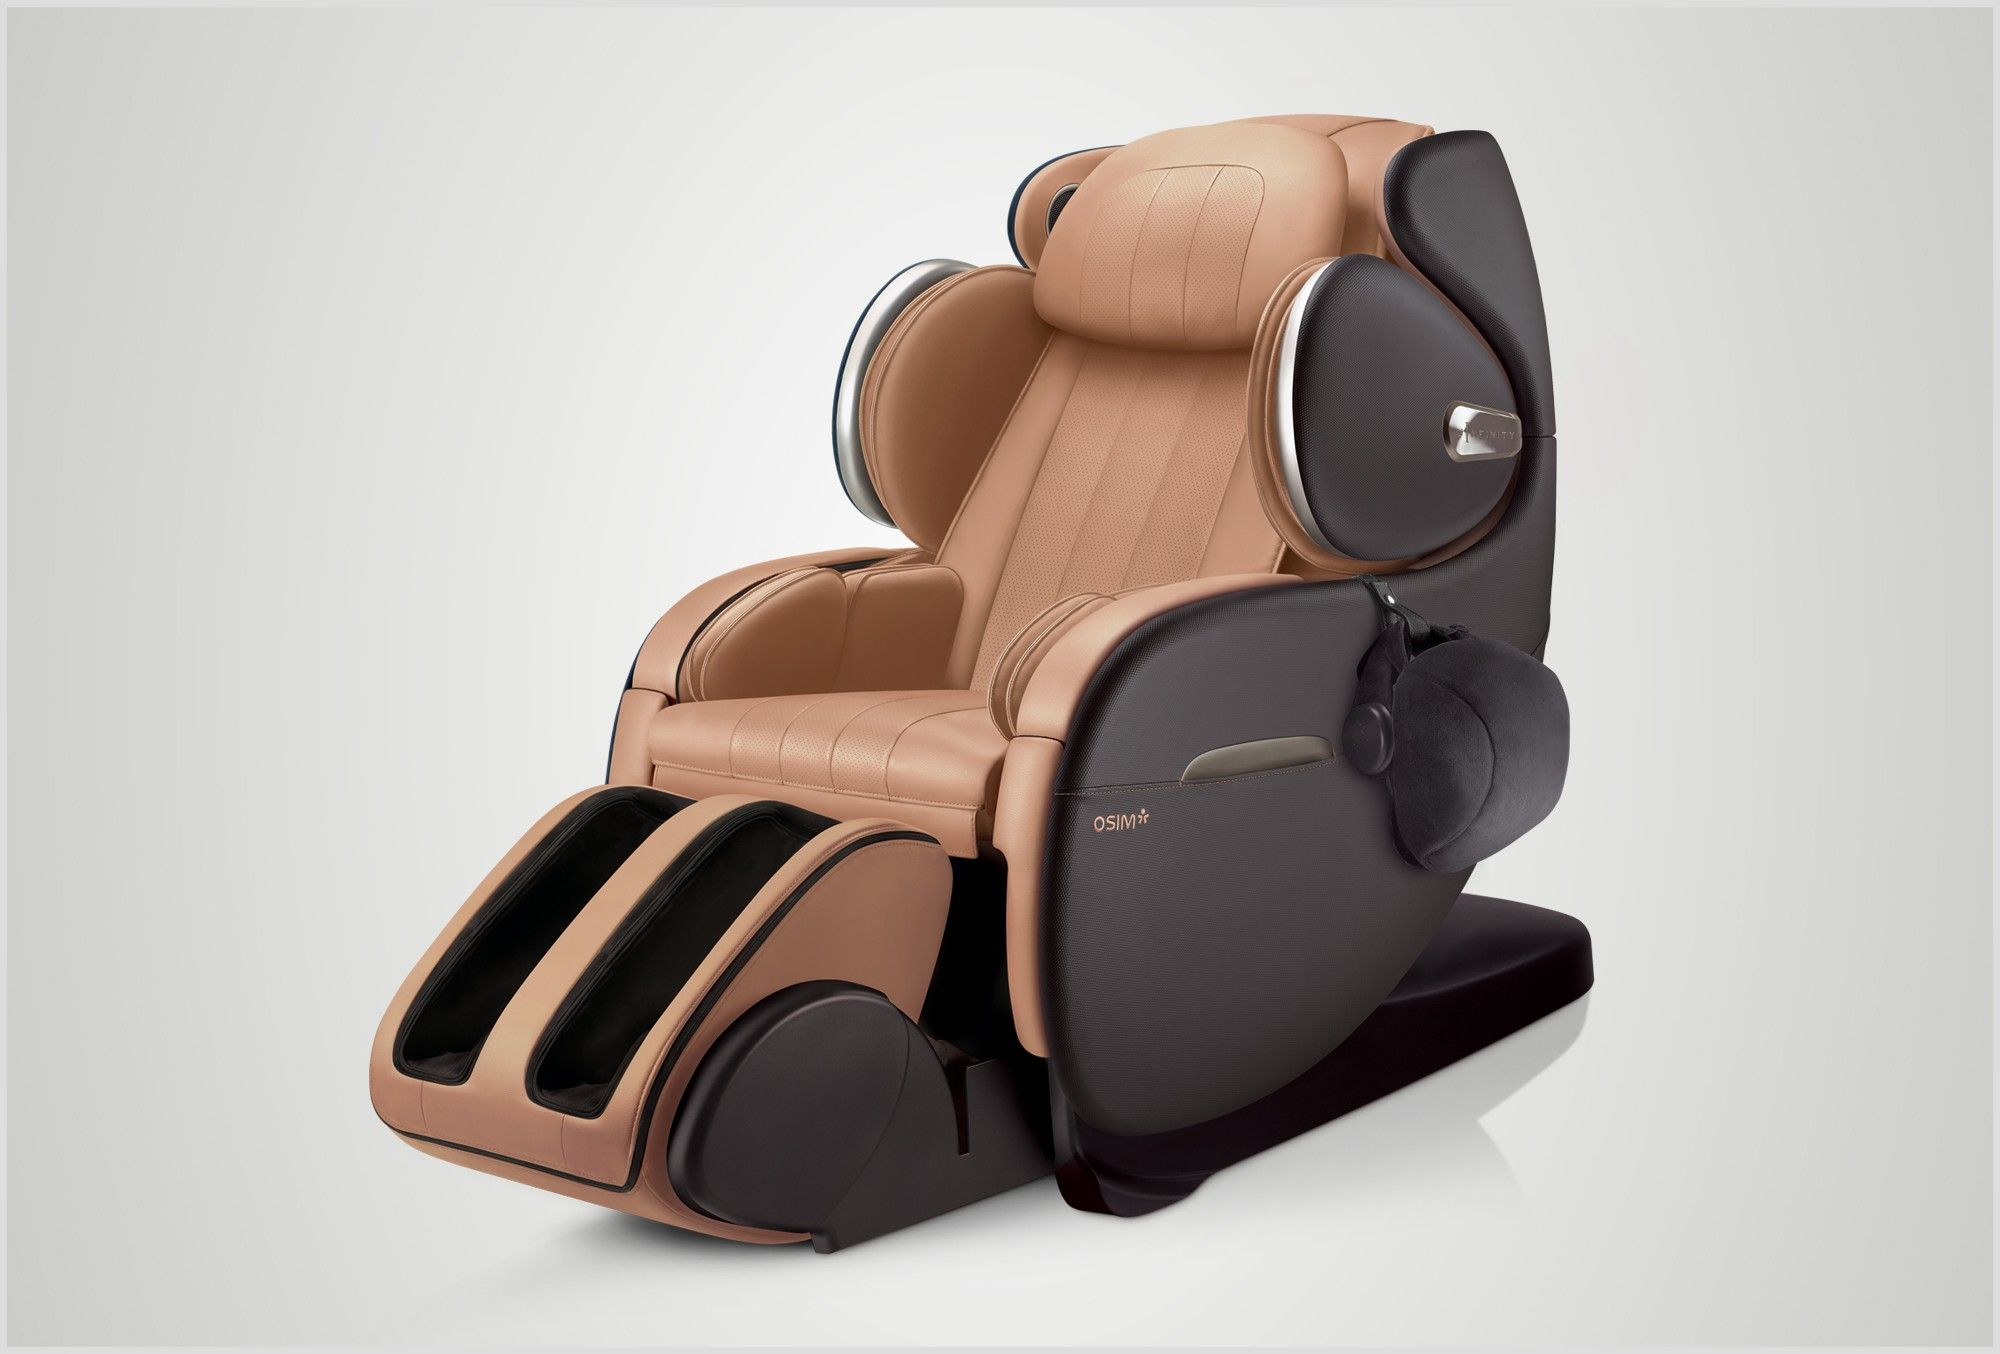 uInfinity Luxe Massage chair, Massage chairs, Back massager